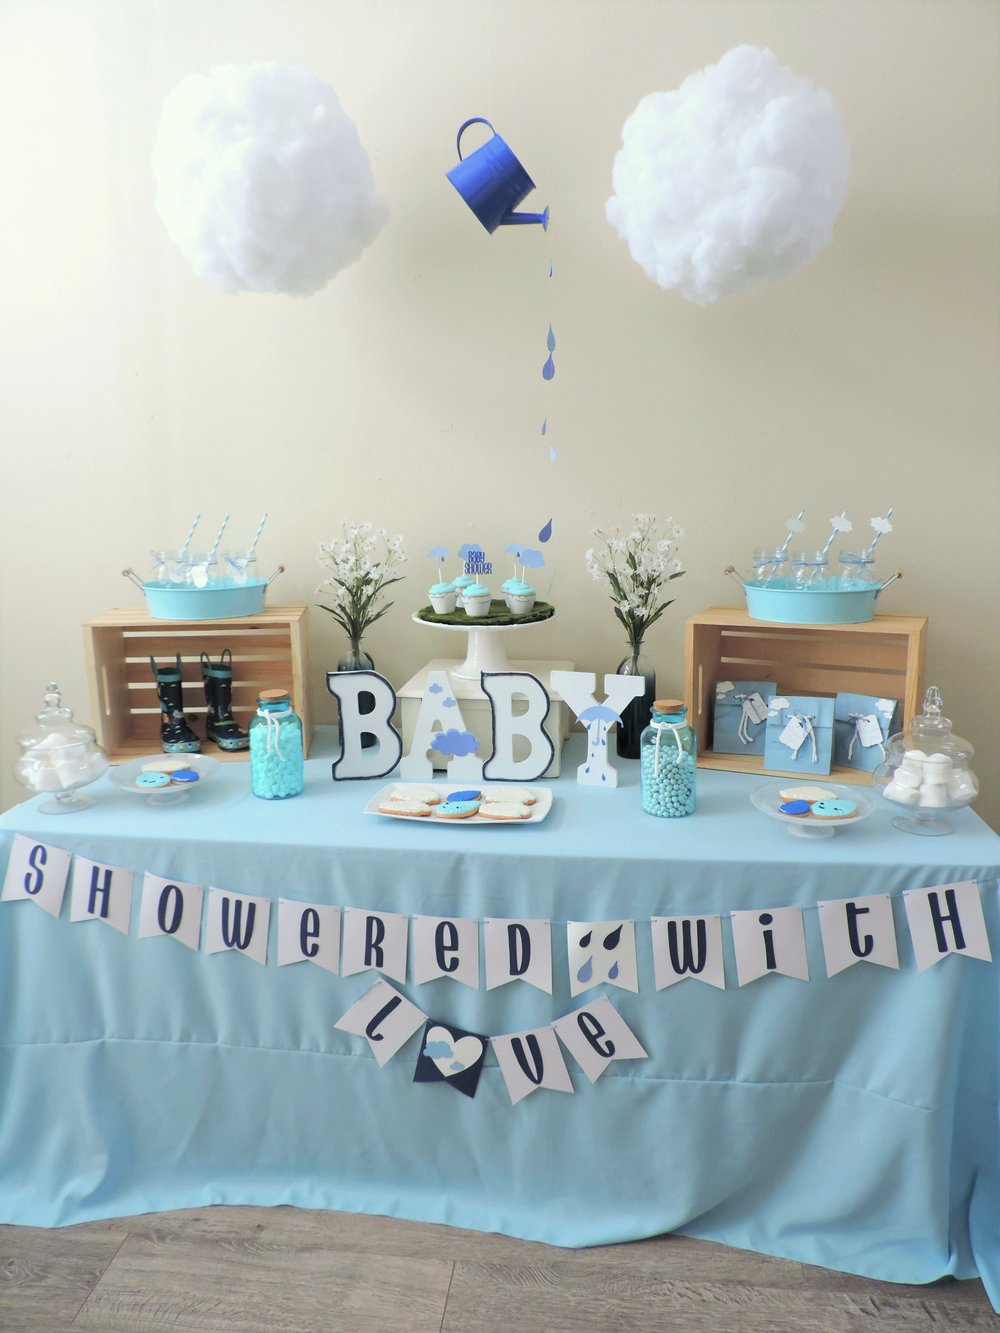 Showered With Love-April Showers Bring May Flowers-Baby Shower Ideas-BABY-Showered With Love baby Shower-www.SugarPartiesLA.com.jpg